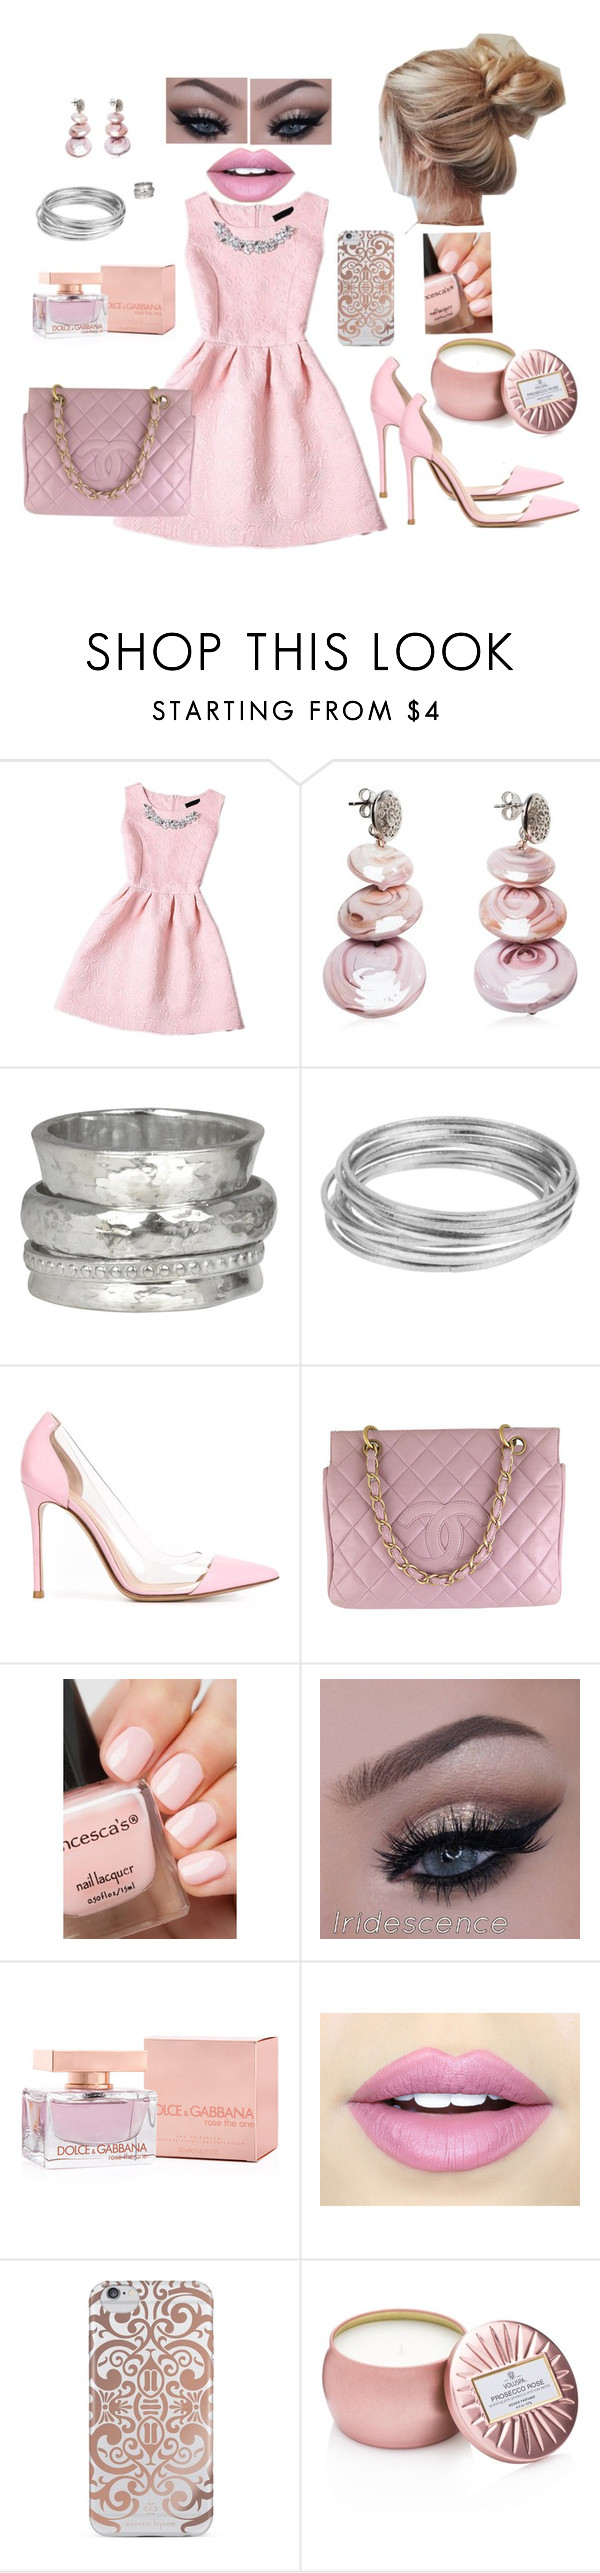 """It's a Pink Day for me!"" by sherrysrosecottage-1 ❤ liked on Polyvore featuring Antica Murrina, MeditationRings, Worthington, Gianvito Rossi, Chanel, Dolce&Gabbana, Fiebiger, Nanette Lepore and Voluspa"